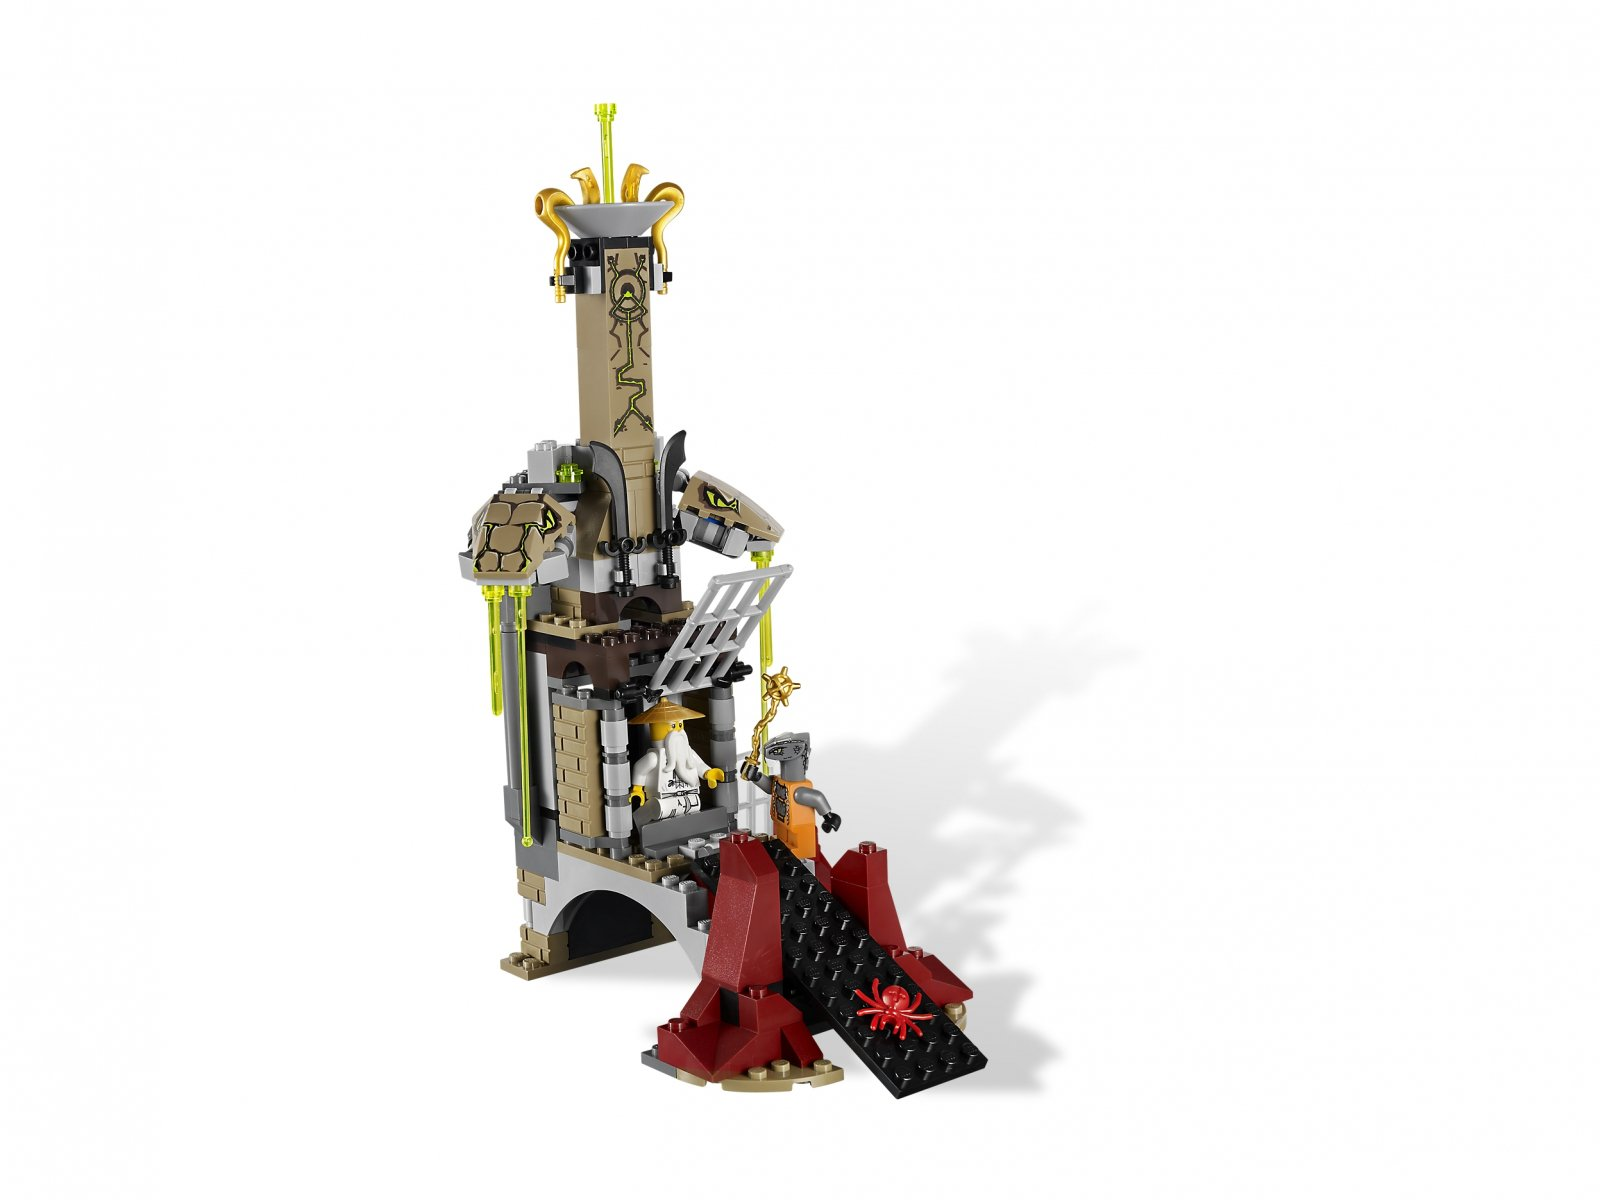 lego ninjago 9450 instructions